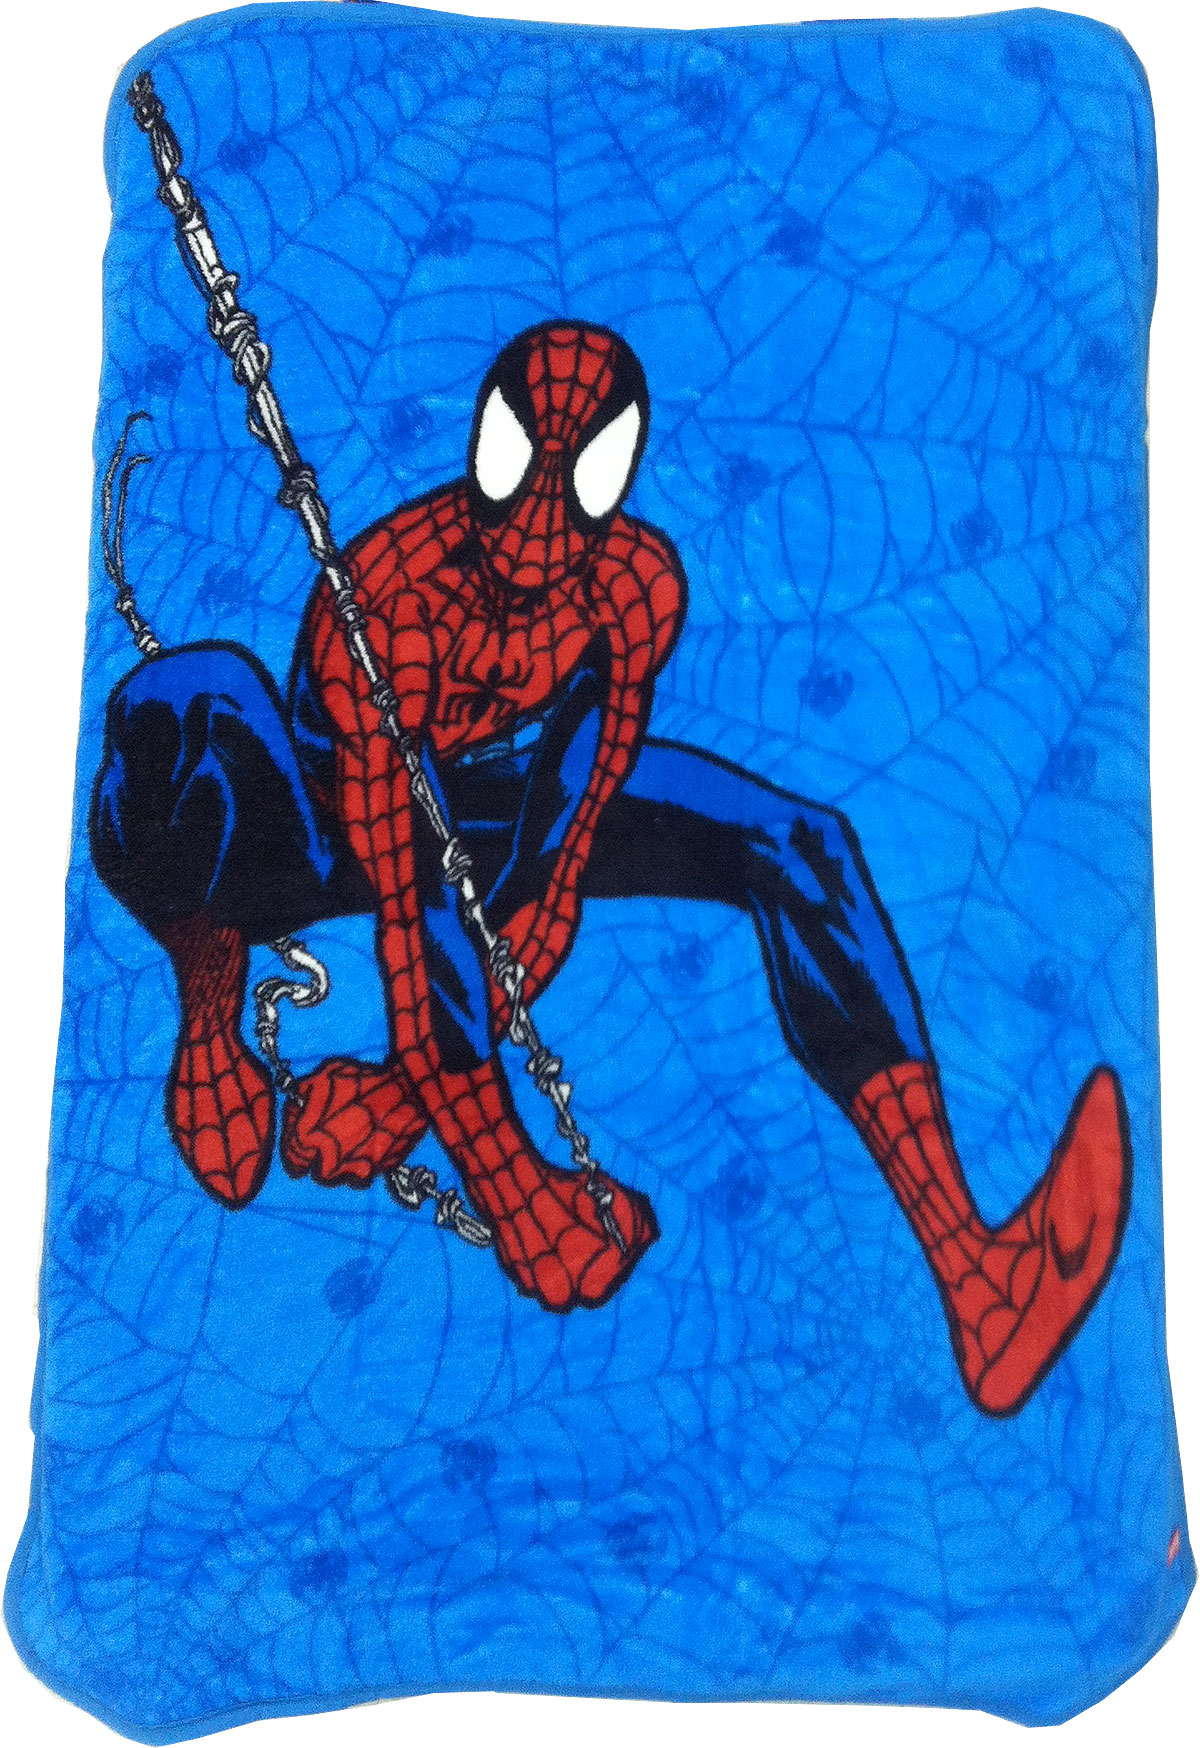 Marvel Comics Spider-Man Toddler Plush Blanket - Spiderman Webslinger Toddler Size Bed 23966